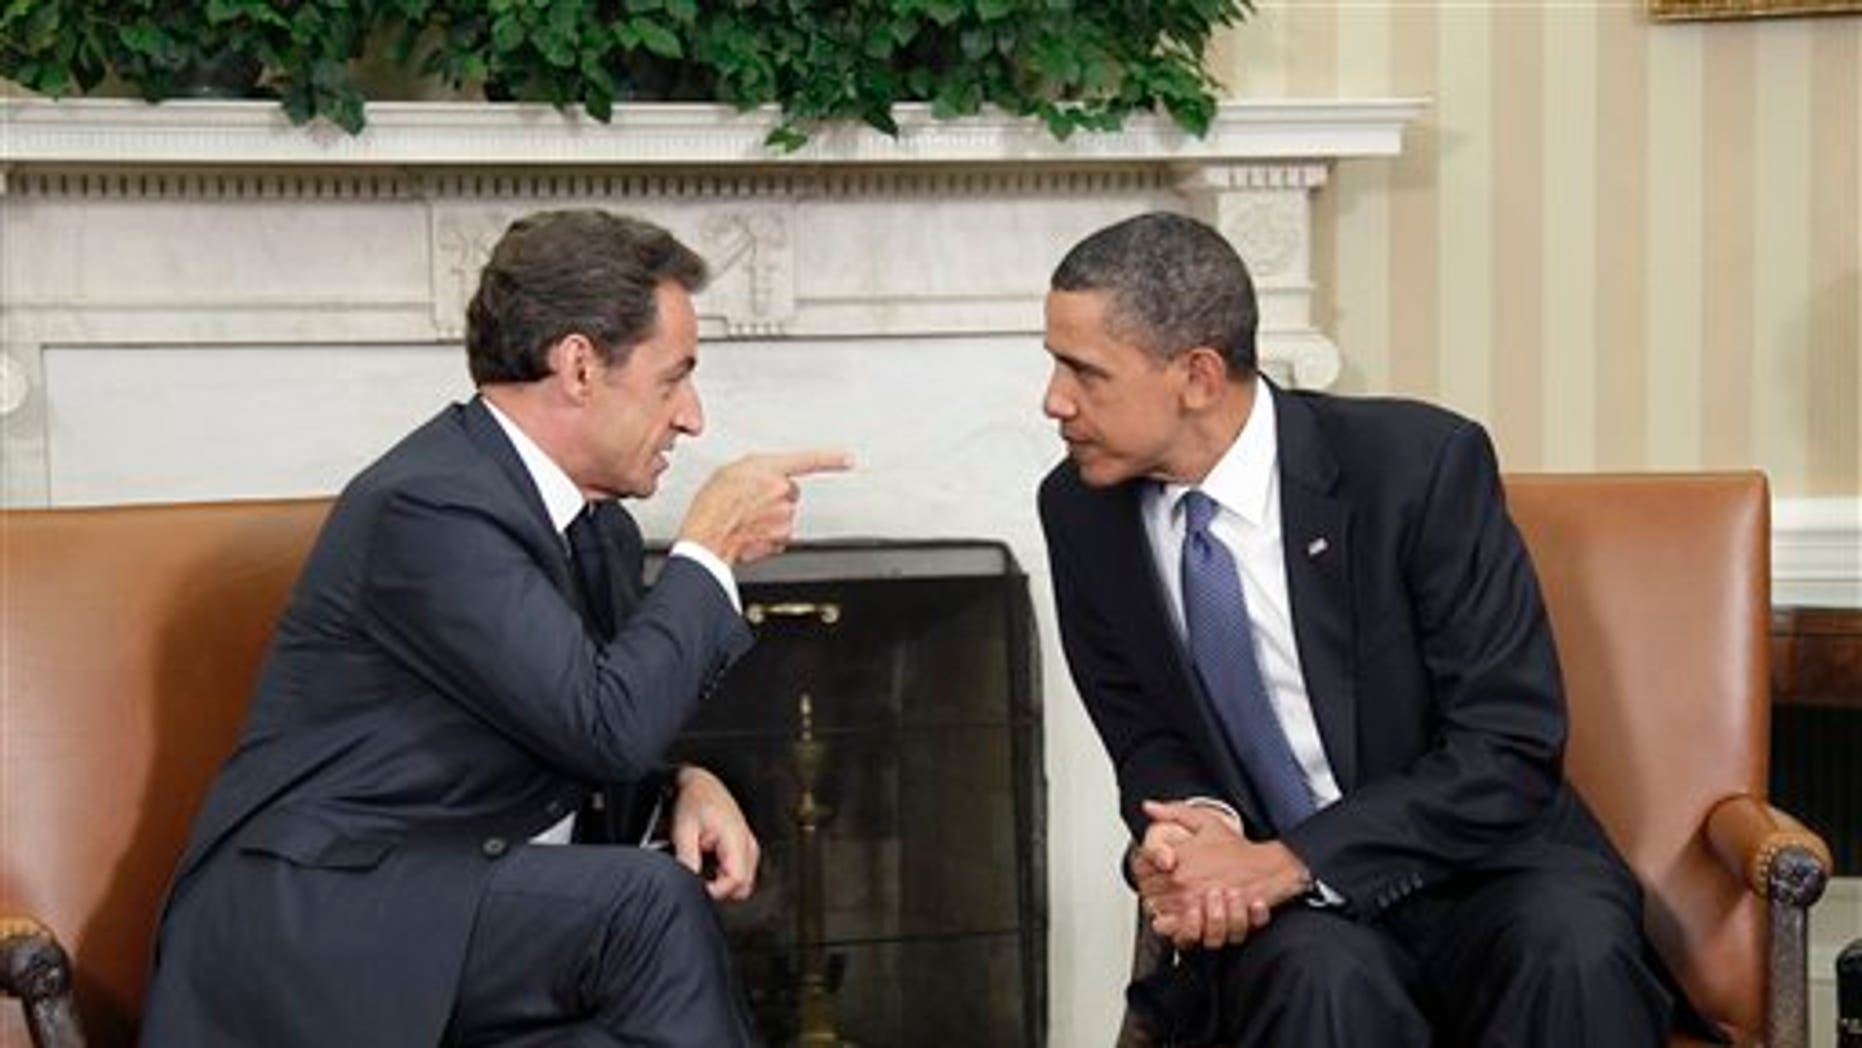 Monday: President Obama meets with French President Nicolas Sarkozy in the Oval Office of the White House.